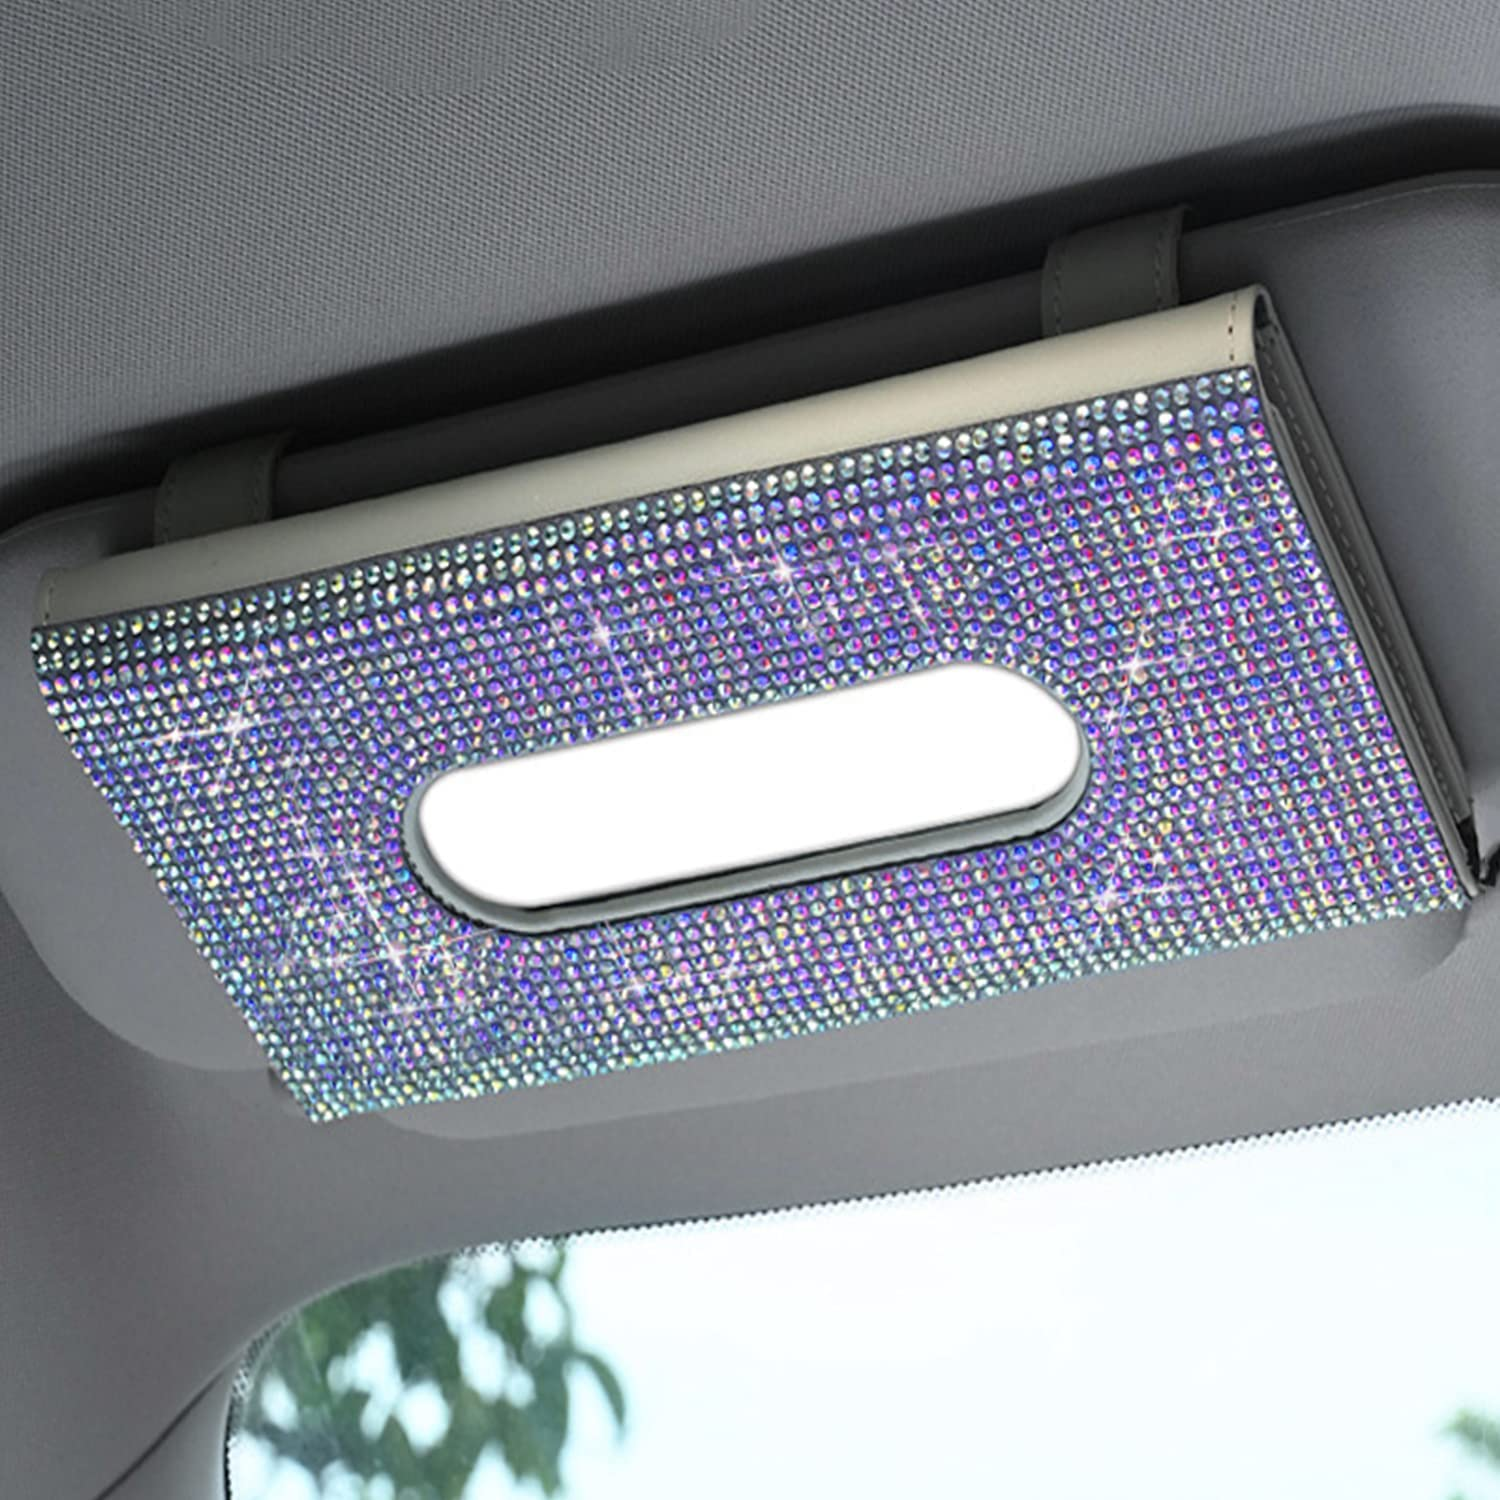 Pinbola Max 41% OFF Bling Sparkling Car Tissue Box Crystal All items in the store Holder Visor Sun